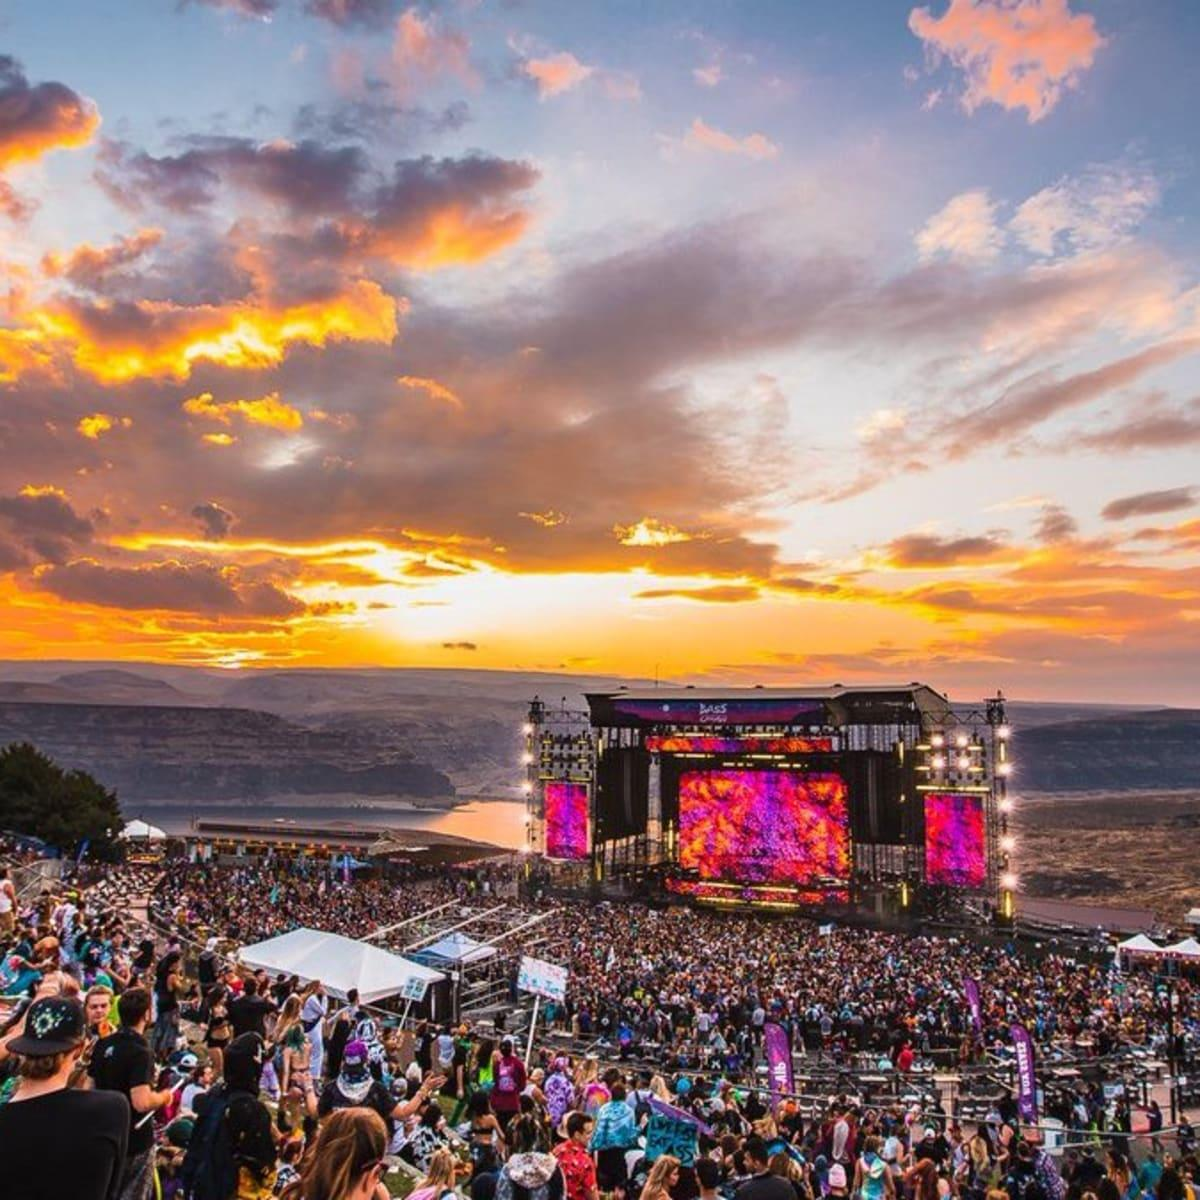 Beyond Wonderland at The Gorge Unveils Stellar 2021 Lineup With REZZ,  Alison Wonderland, More - EDM.com - The Latest Electronic Dance Music News,  Reviews & Artists